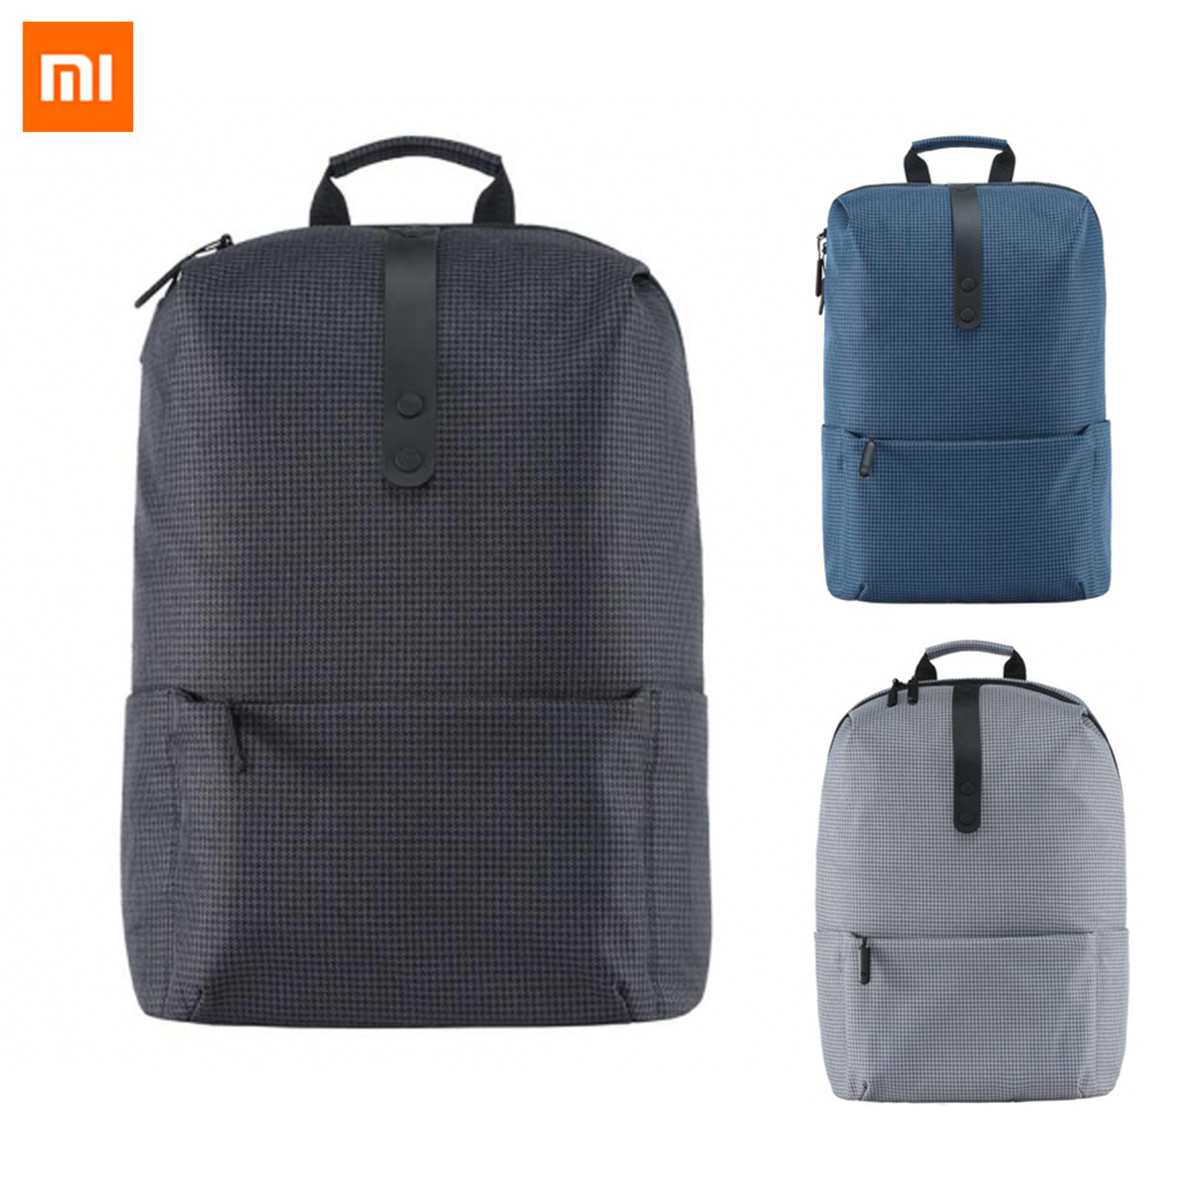 Xiaomi College Style Backpack 15.6 Inch Laptop Computer Bags Large Capacity School Backpacks For Women Men Boy Girl